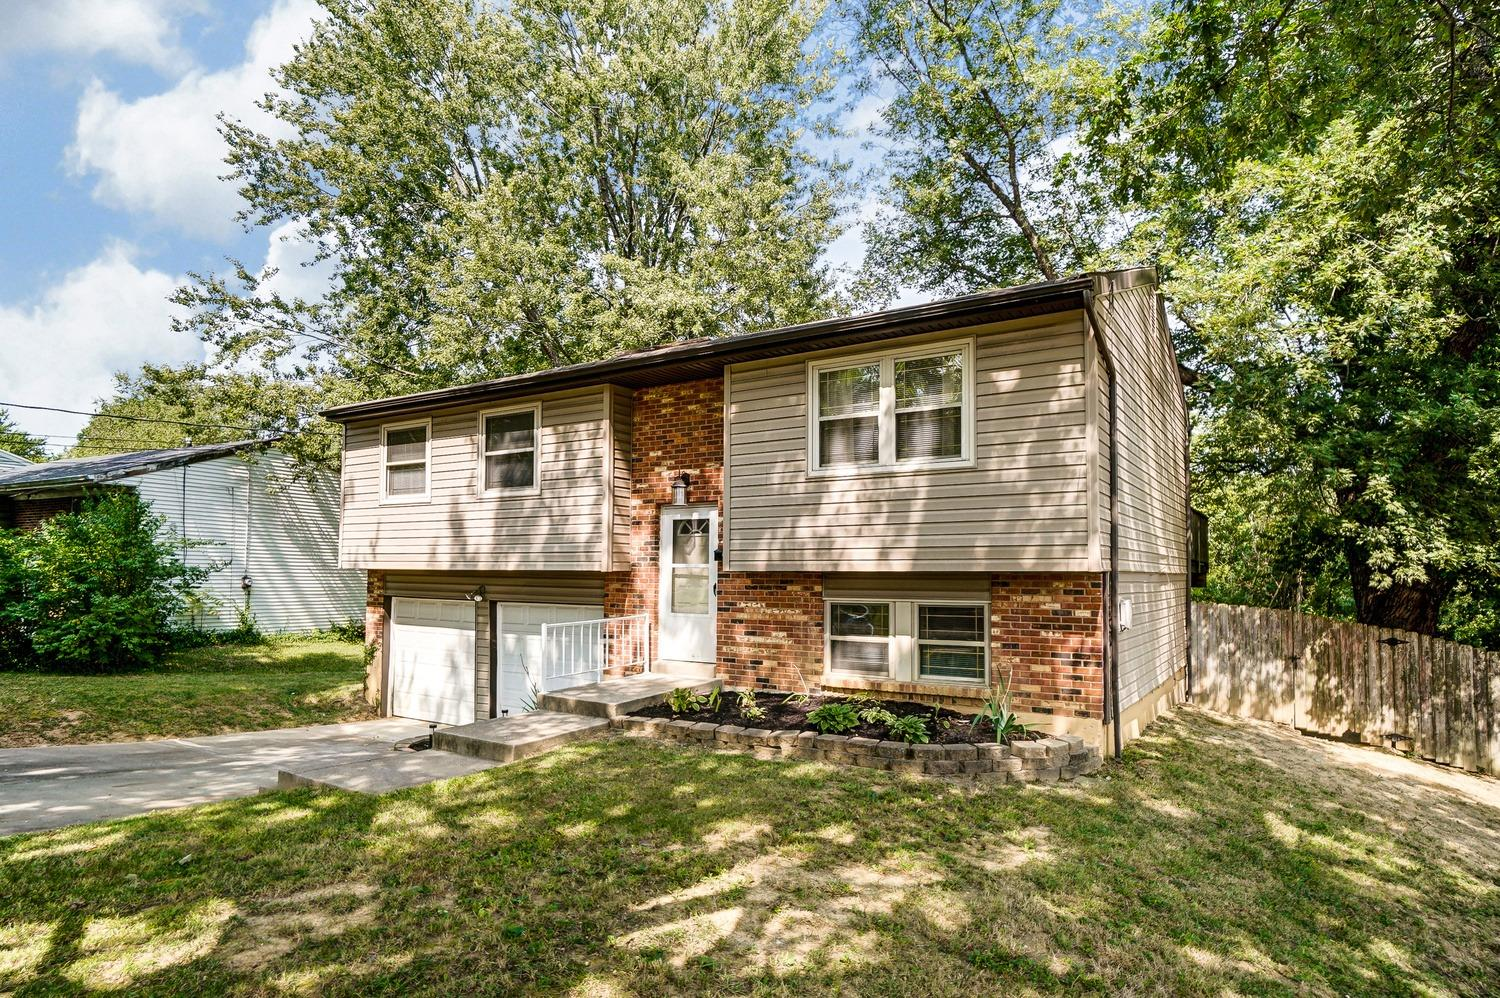 Photo 2 for 2322 Magdalena Dr Springfield Twp., OH 45231